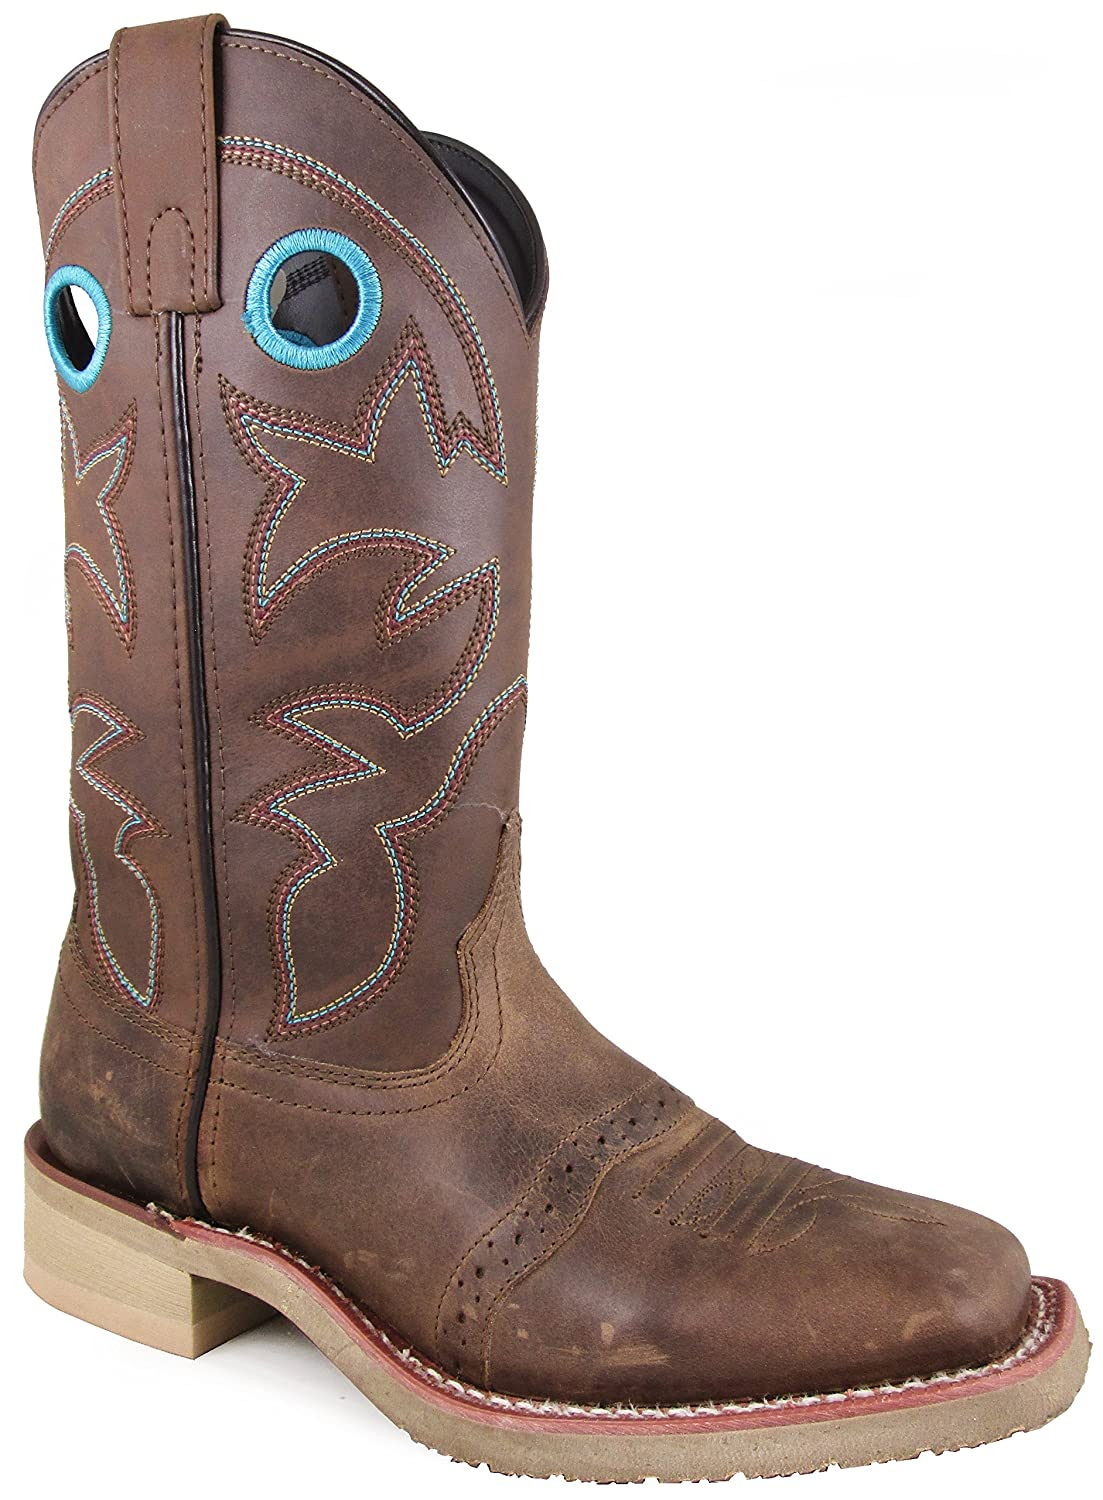 Smoky Mountain Women's Hayden Pulll On Holes Square Toe Brown Oil Distress/Brown Boots B071JZRSZB 6 B(M) US